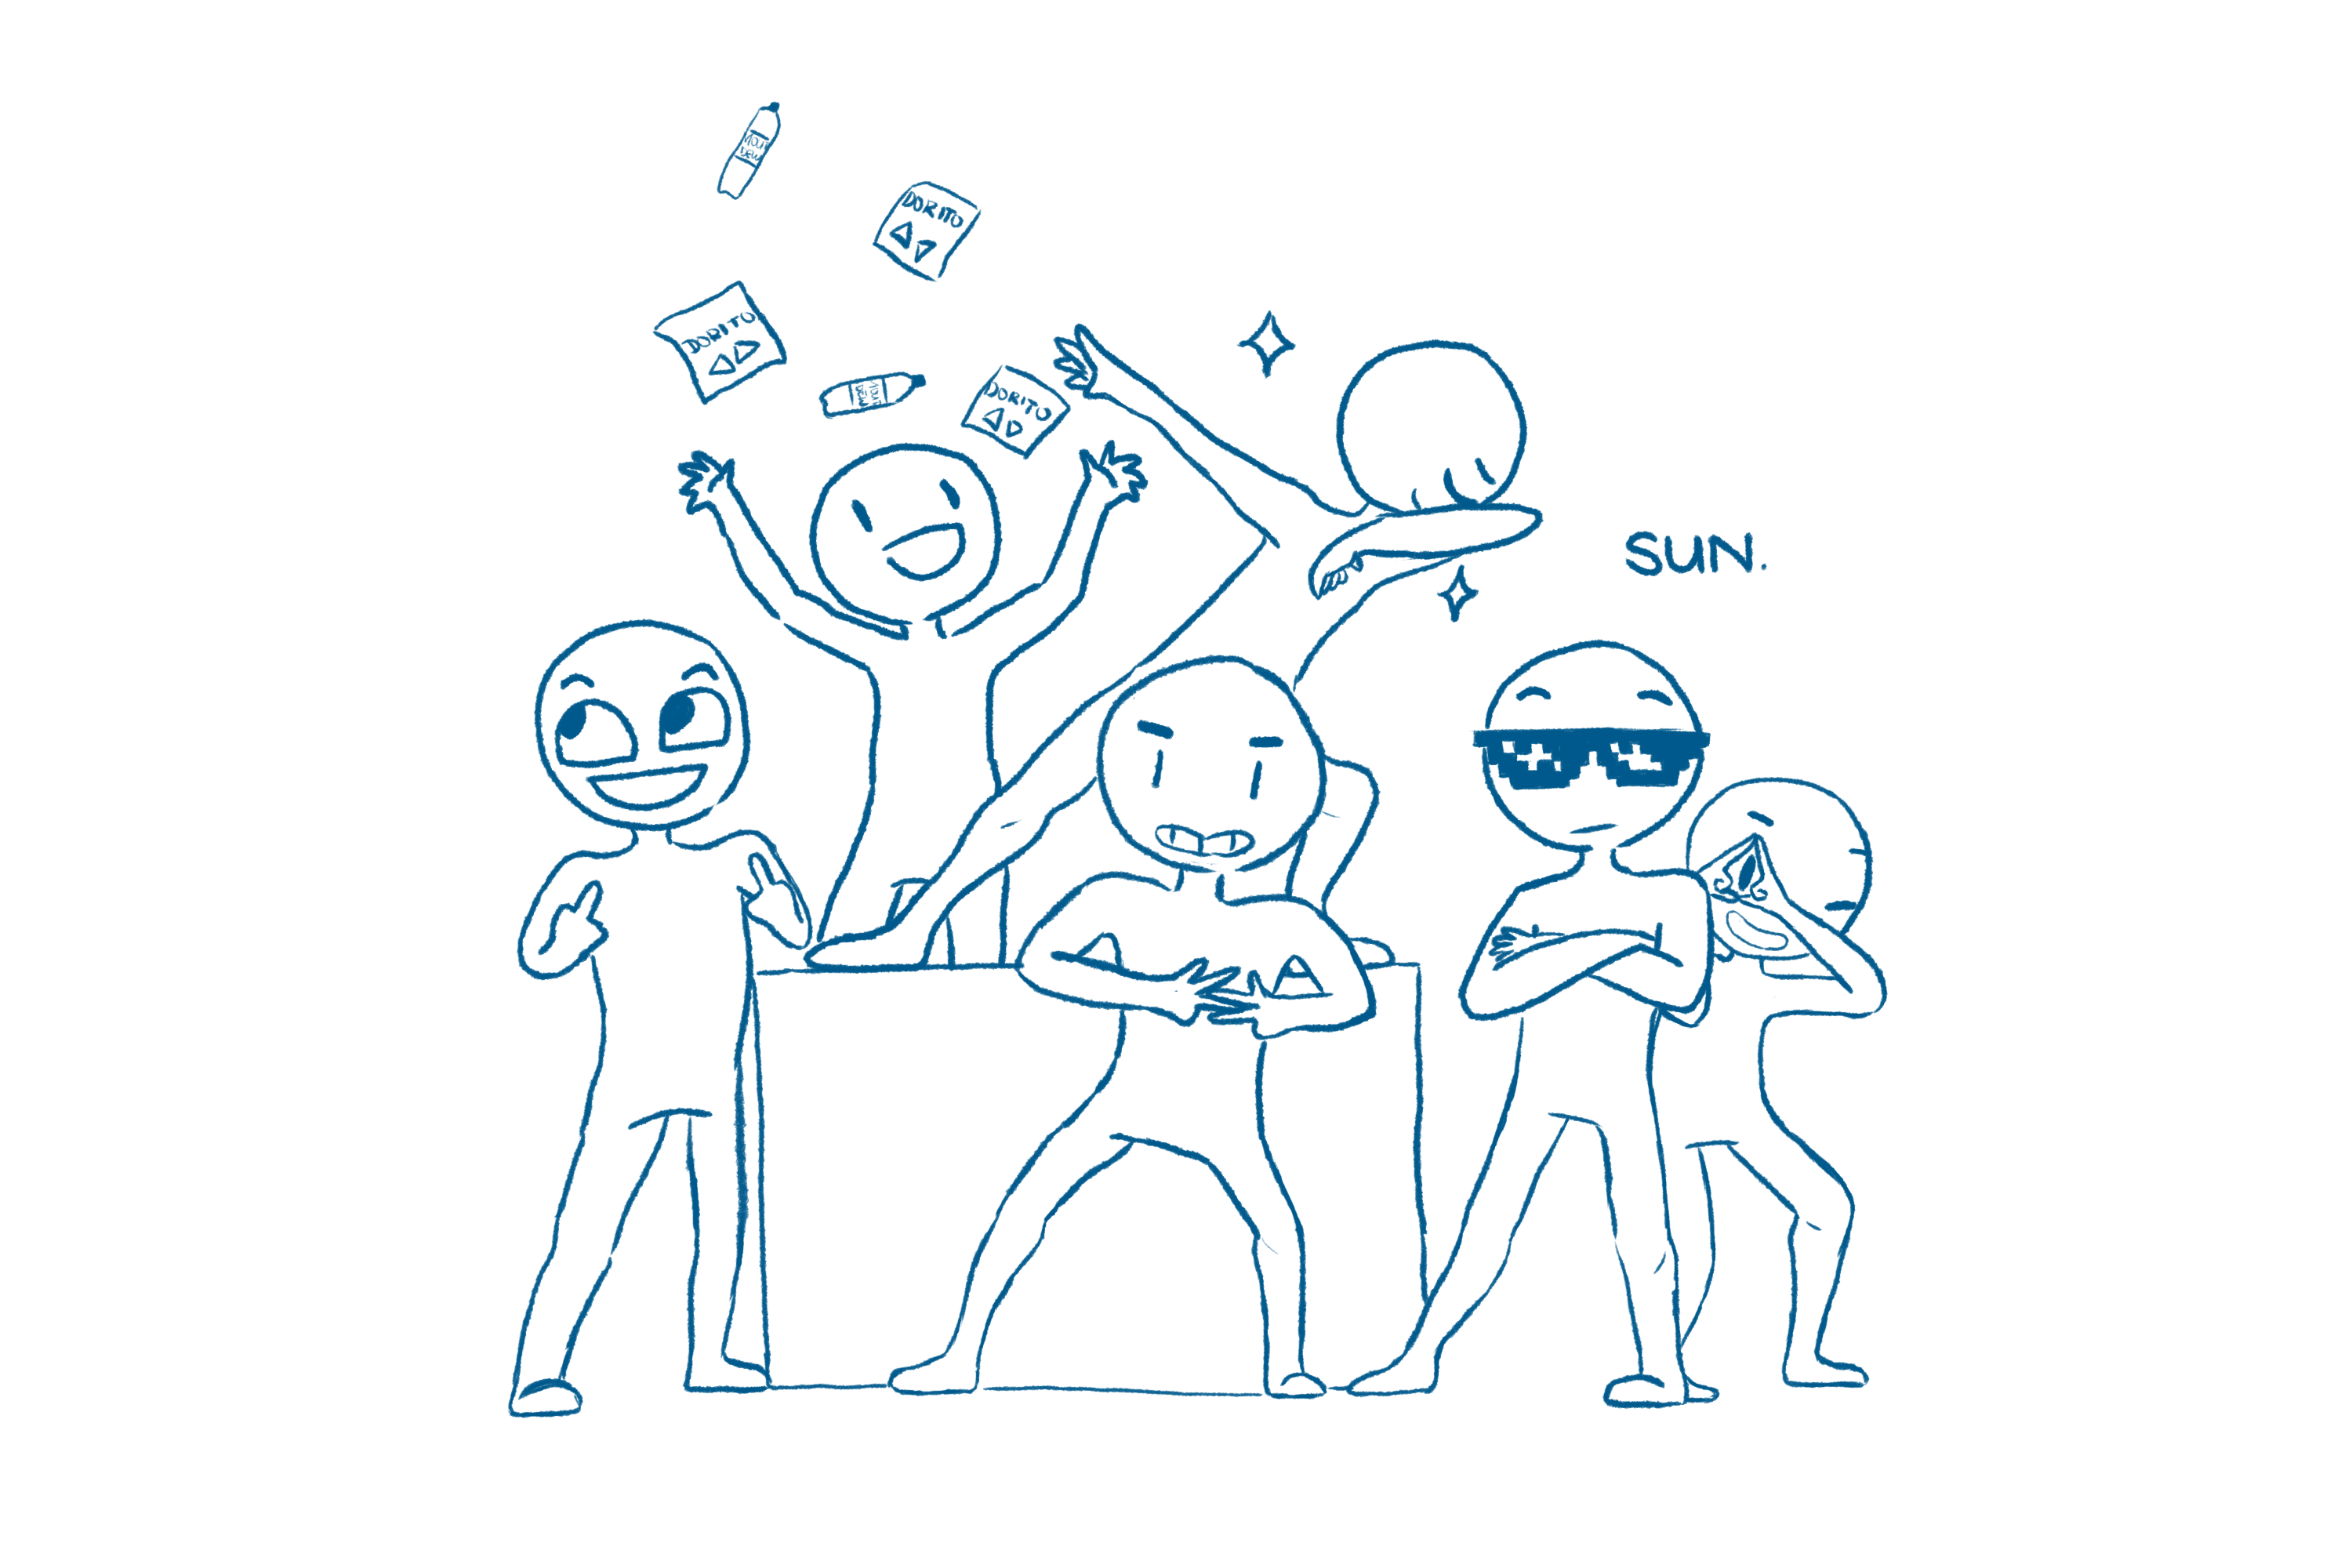 Draw Your Squad Draw Your Squad Meme Edition By Ds Al Coda On Deviantart Draw Your Squad Meme Drawings Drawing Poses